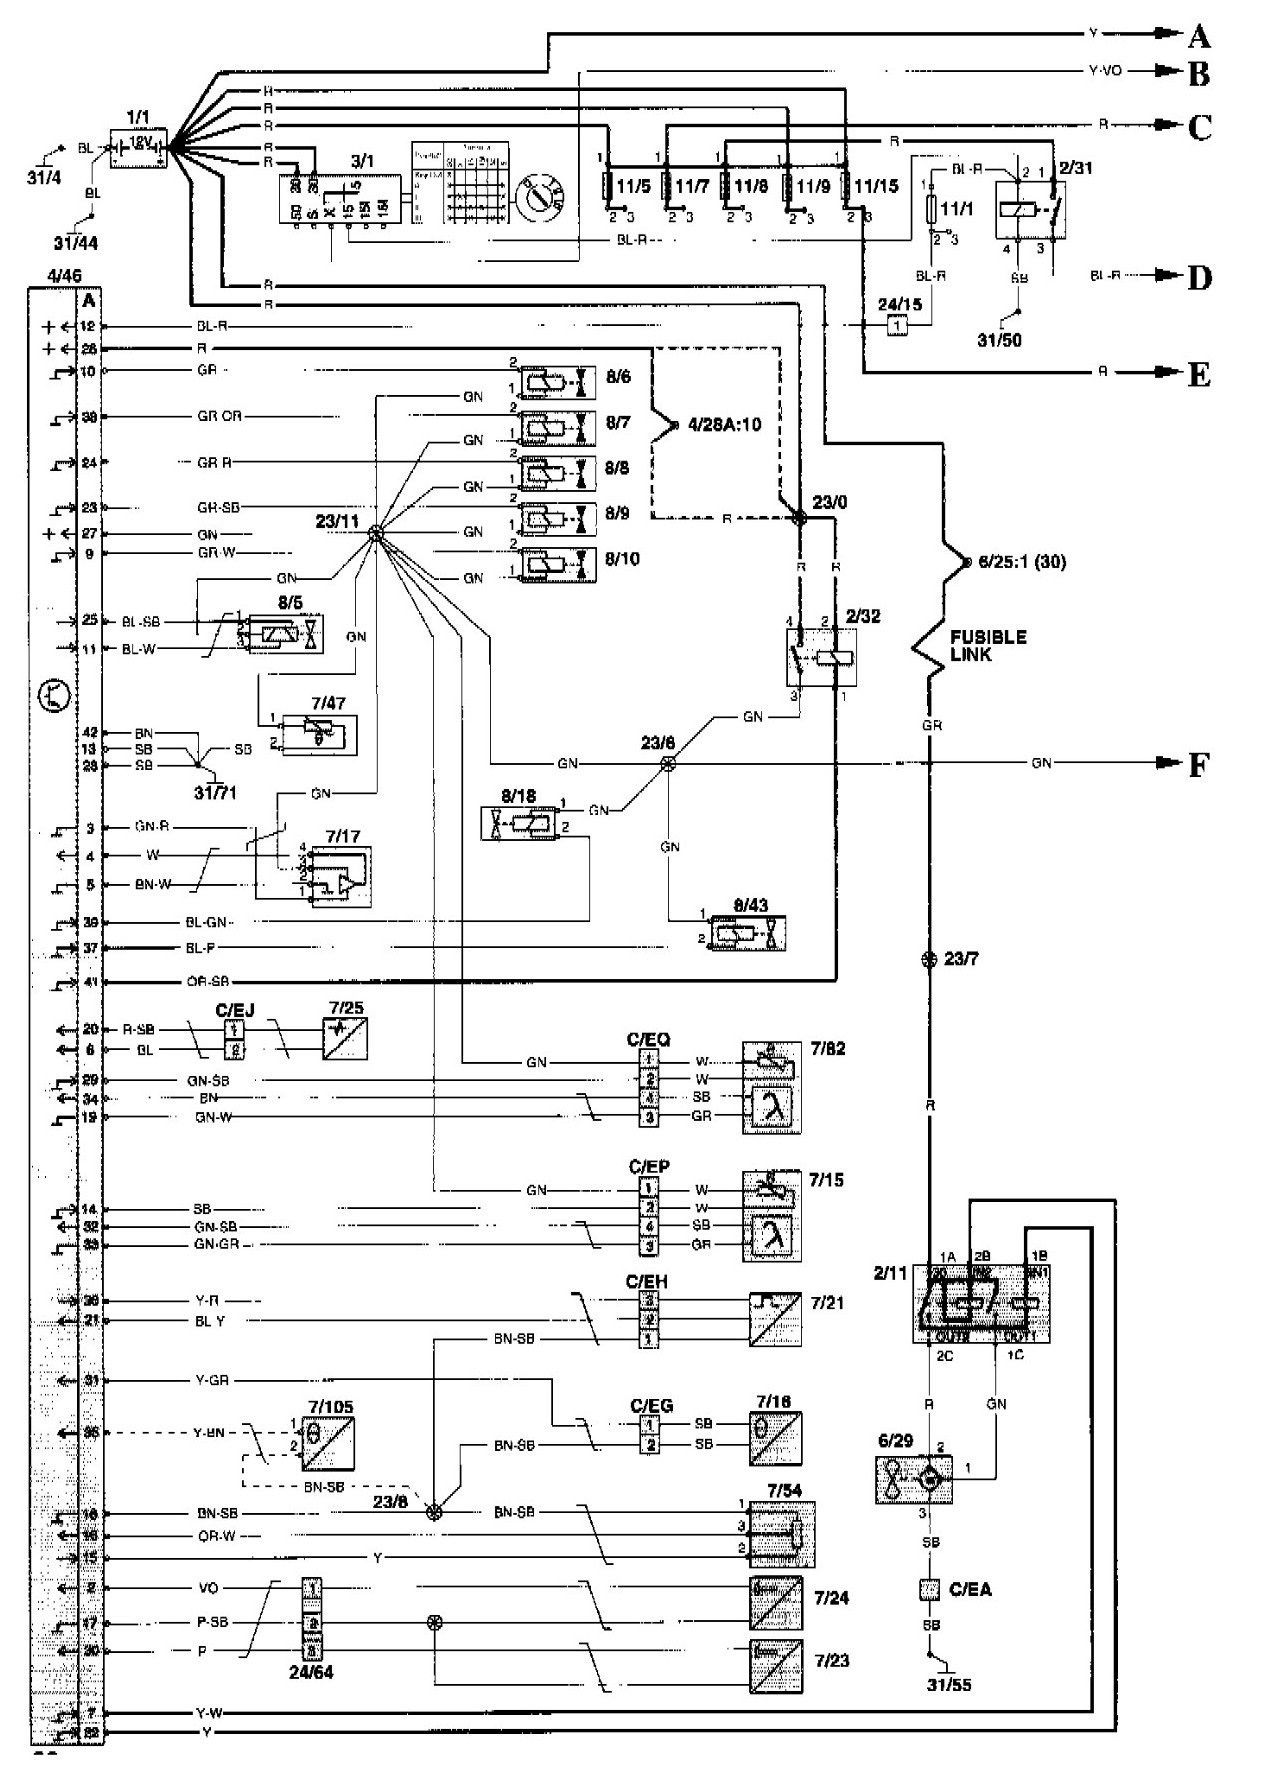 [DHAV_9290]  Volvo V70 Electrical Diagram - 02 Explorer Fuse Diagram for Wiring Diagram  Schematics | Volvo V70 Schematics |  | Wiring Diagram Schematics